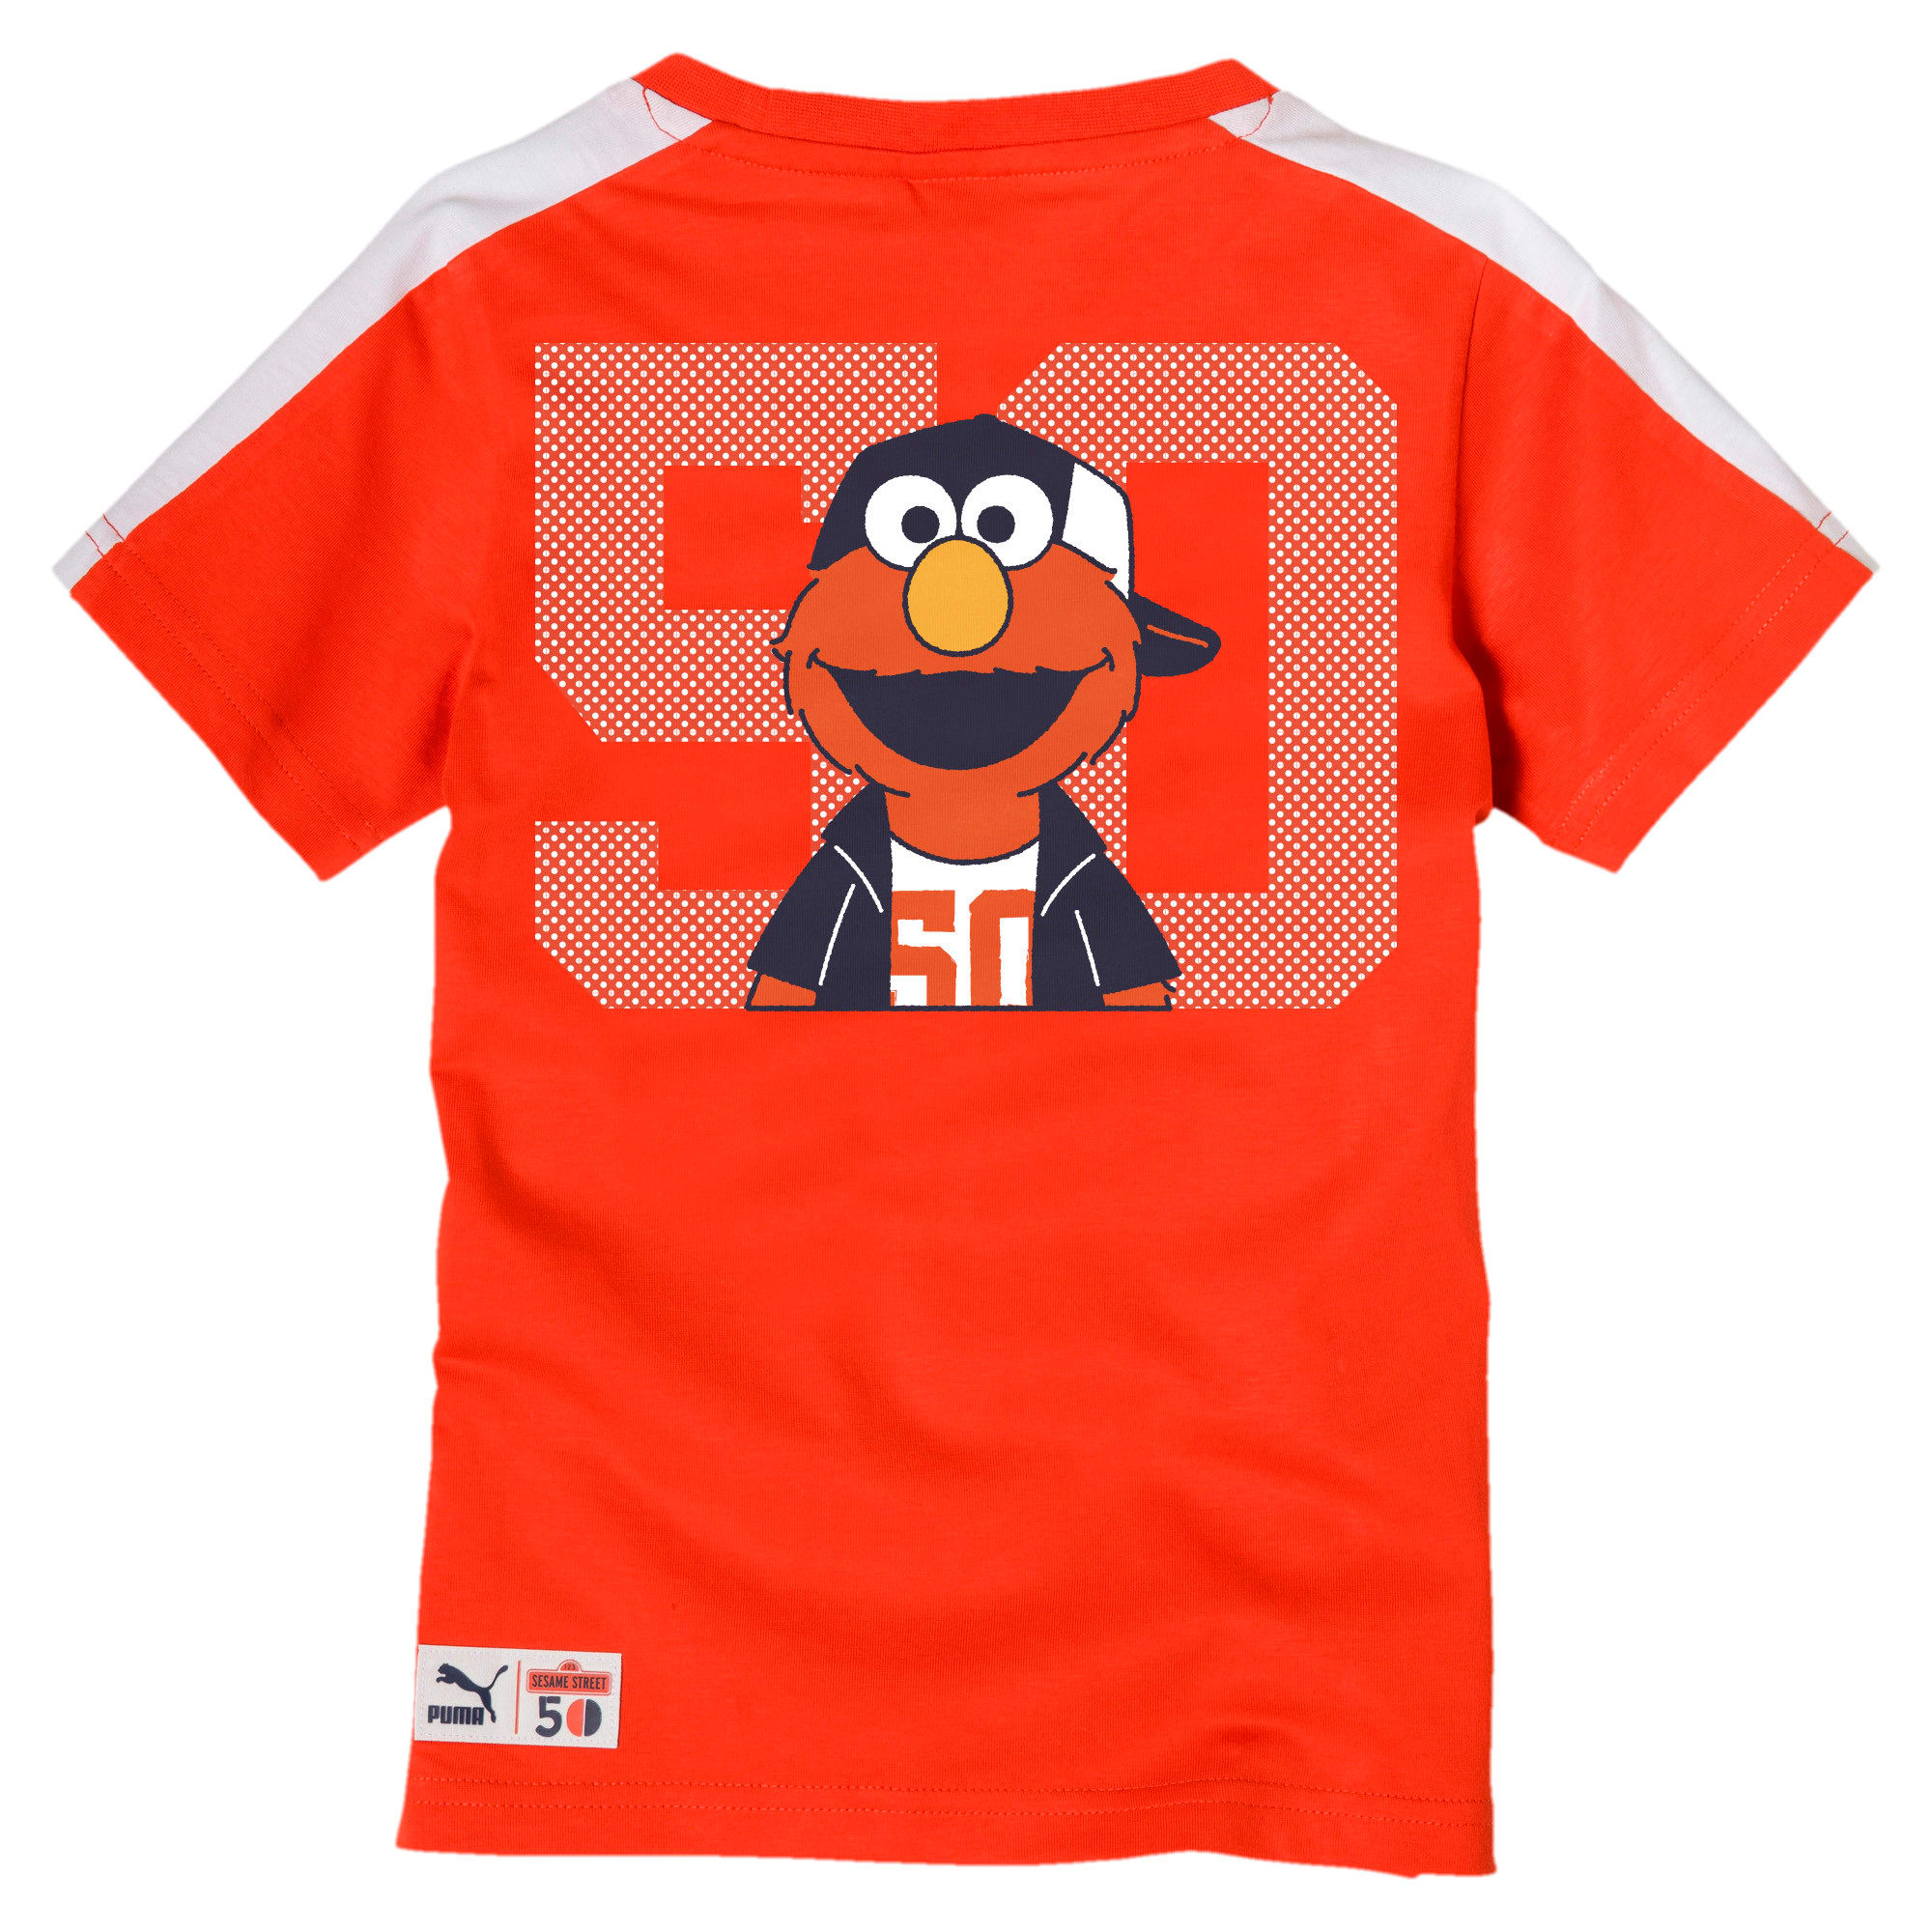 Thumbnail 2 of PUMA x SESAME STREET Boys' Tee, Cherry Tomato-tigerlily, medium